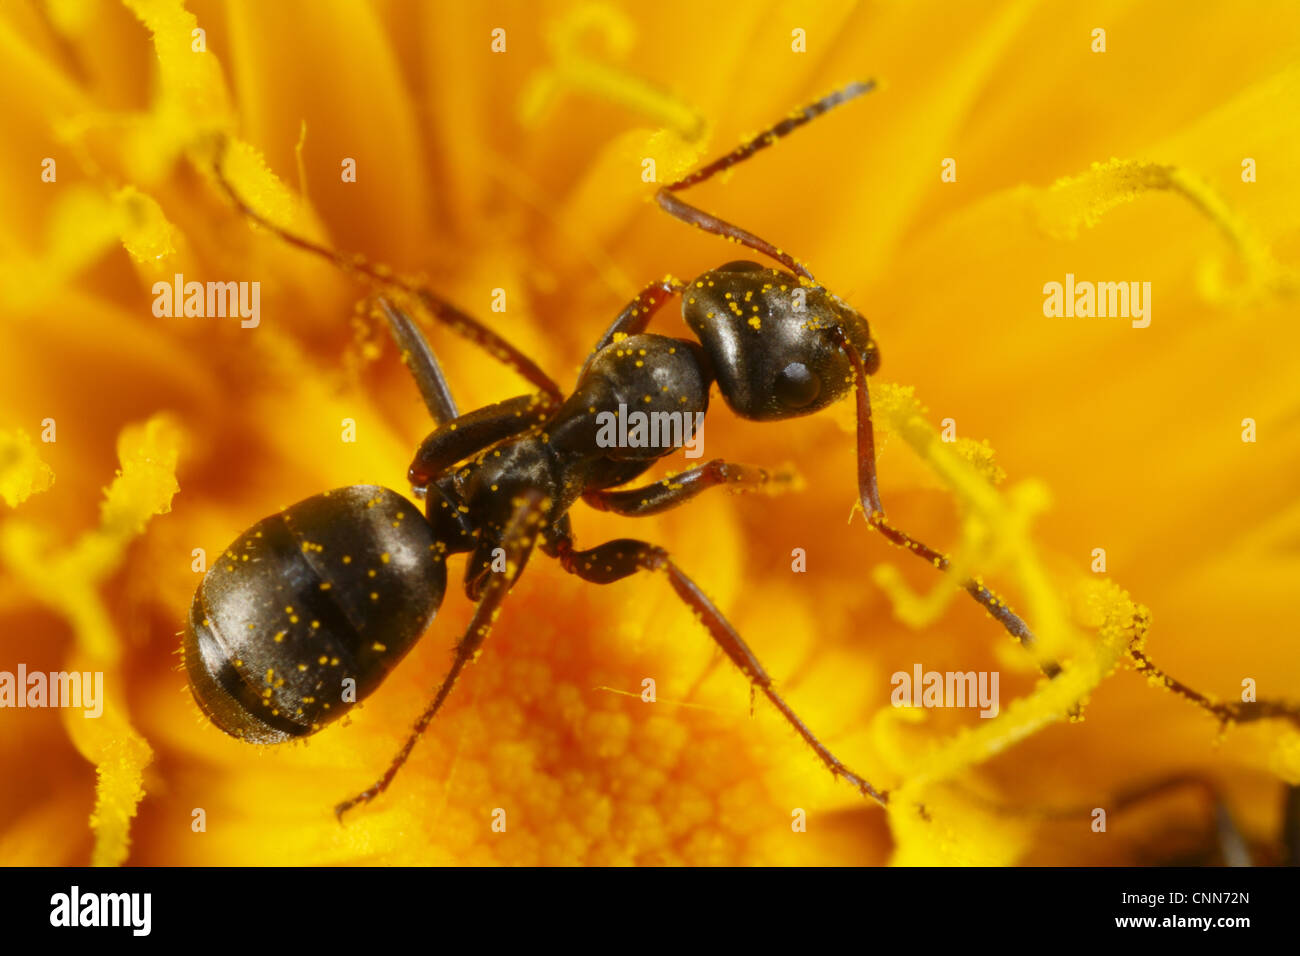 Black Garden Ant (Lasius Niger) Adult Worker, Feeding On Dandelion  (Taraxacum Sp.) Flower, Powys, Wales, April